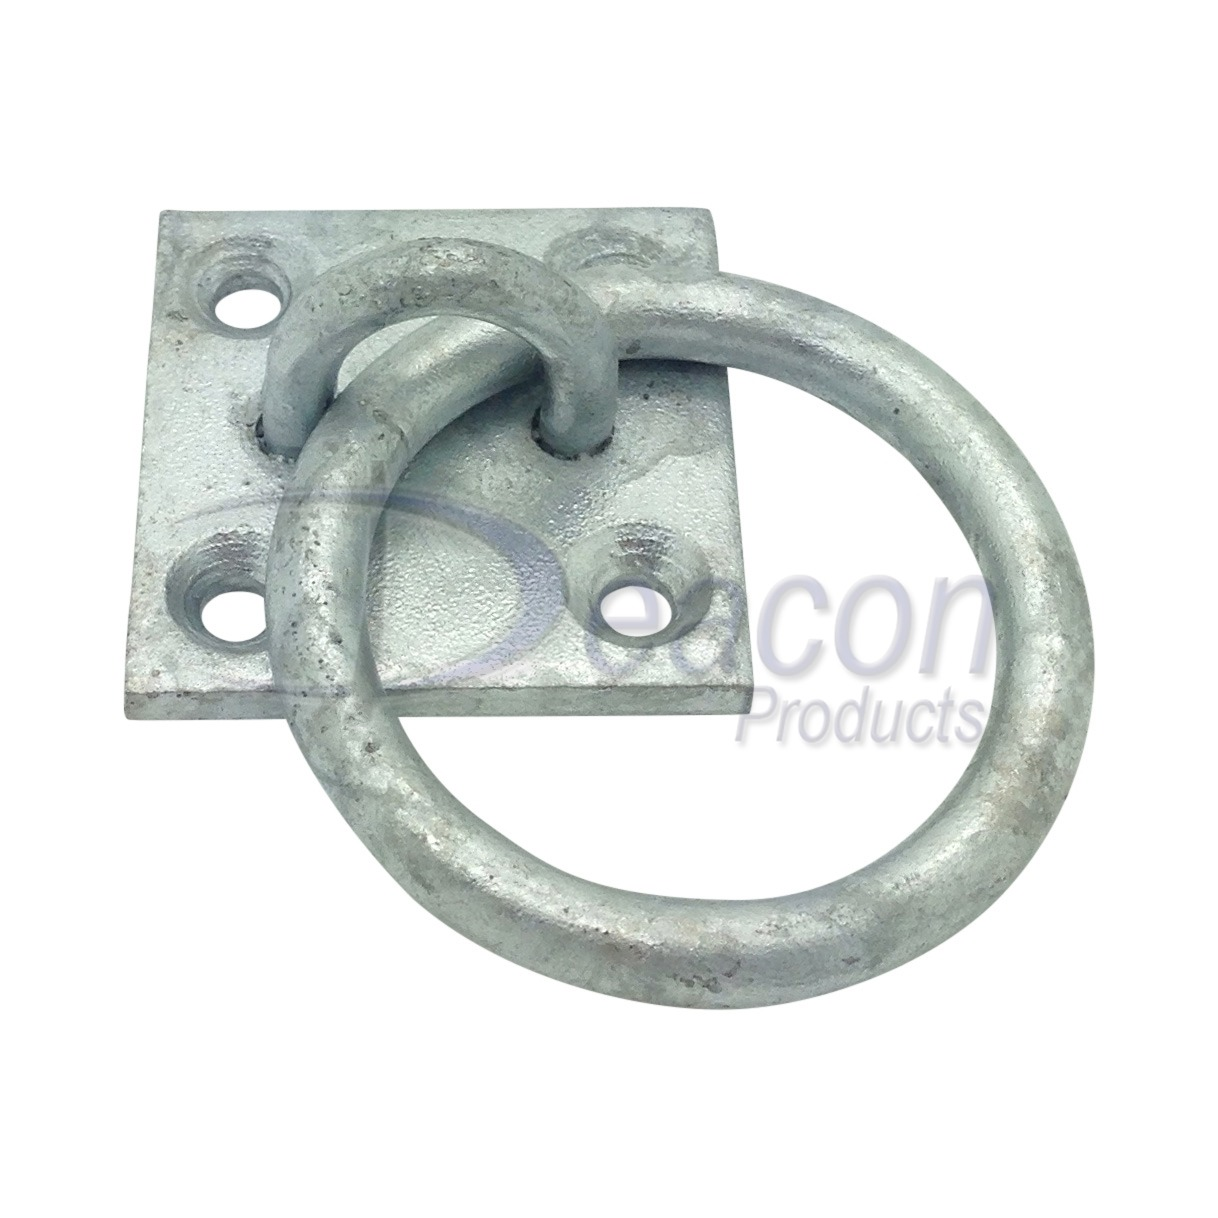 galvanized-square-plate-ring